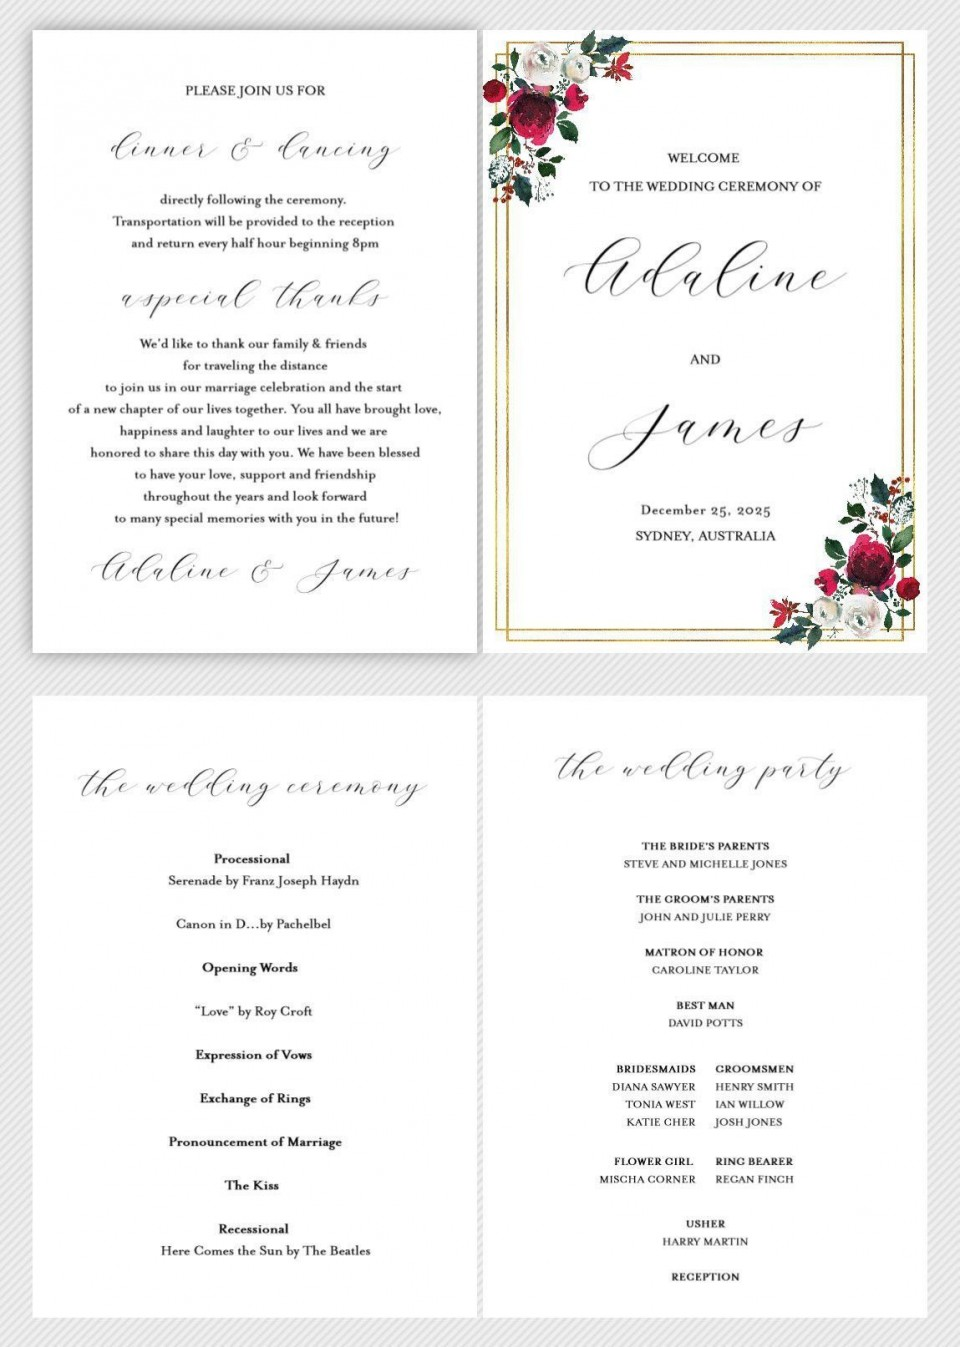 002 Simple Wedding Order Of Service Template Free Idea  Front Cover Download Church960